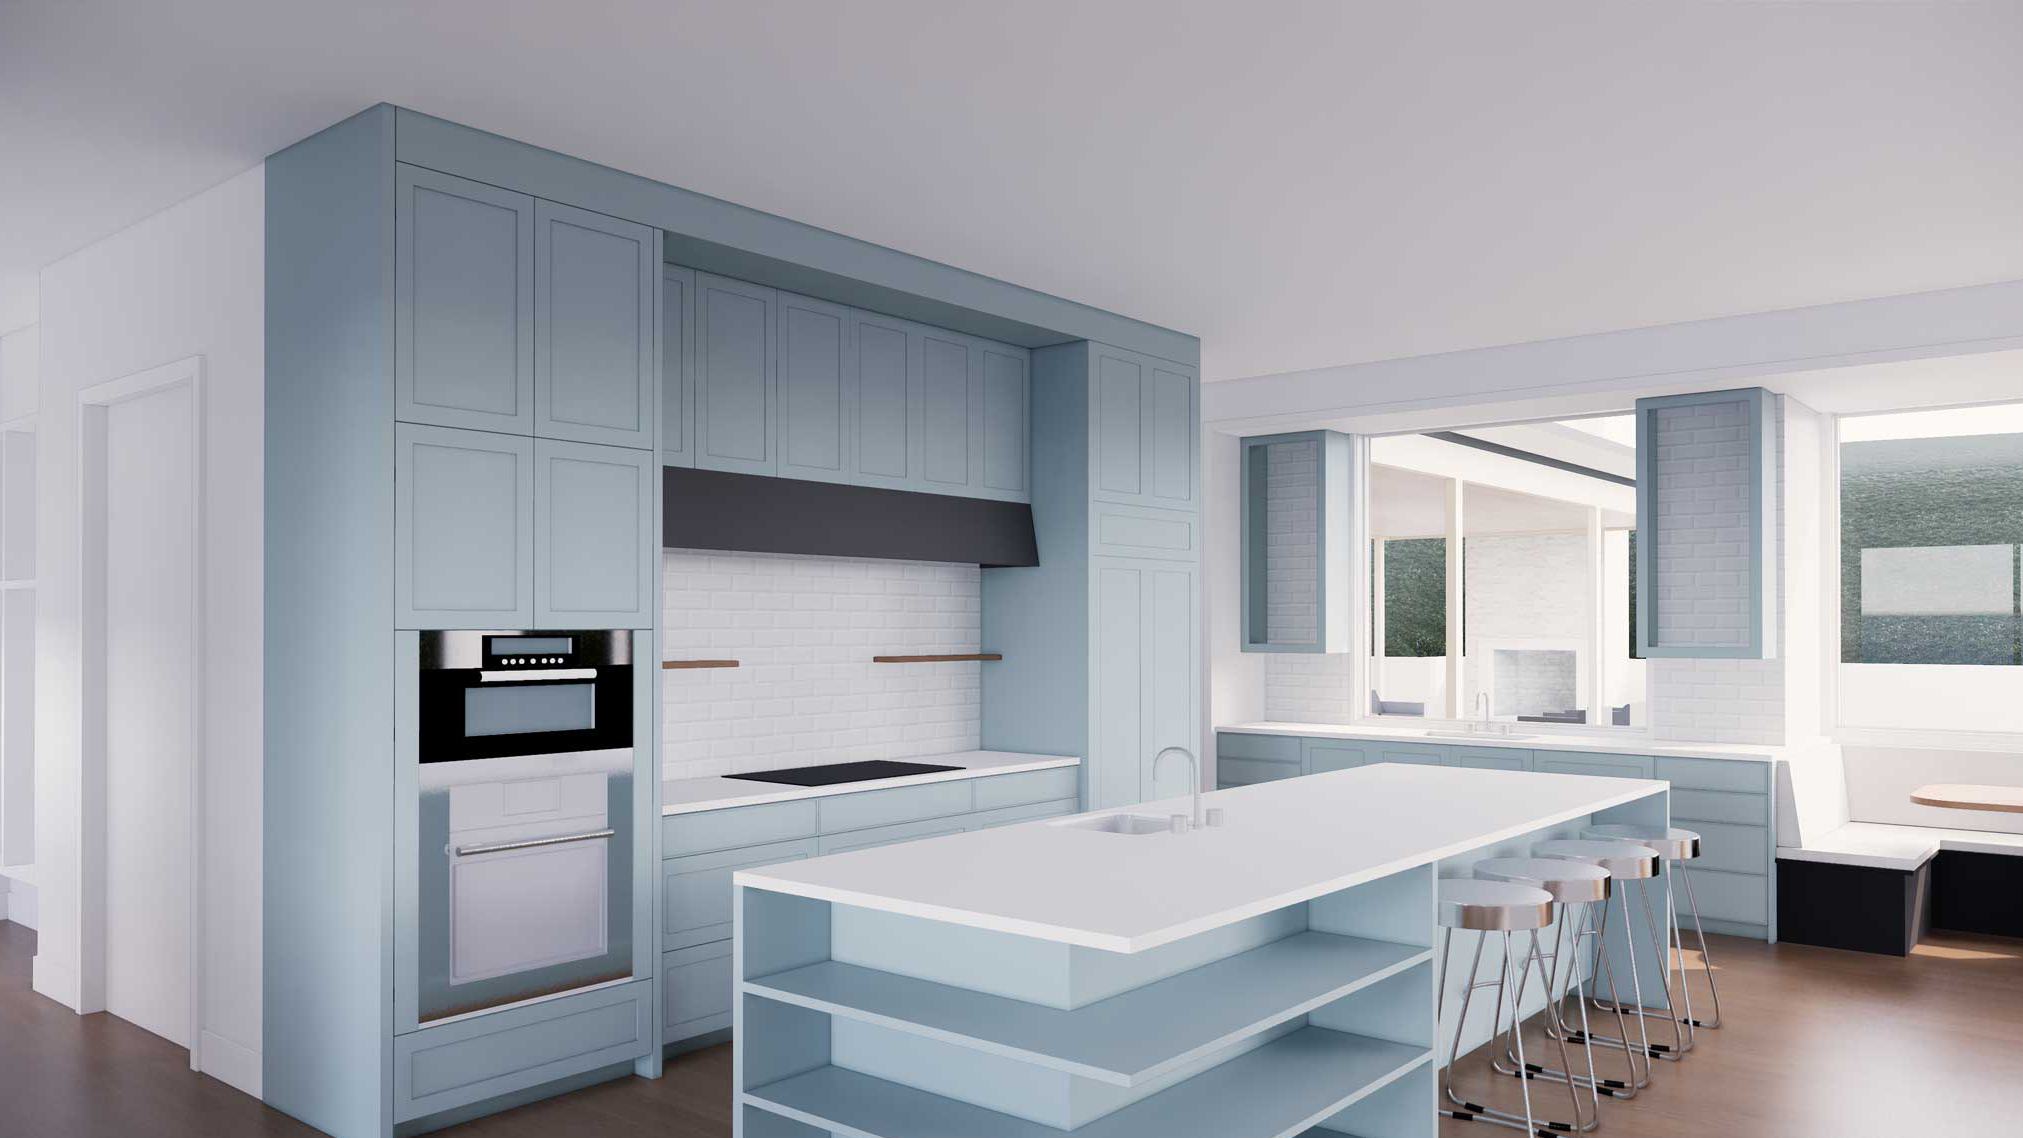 Park-Ave-Enscape-3D rendering services of kitchen layout